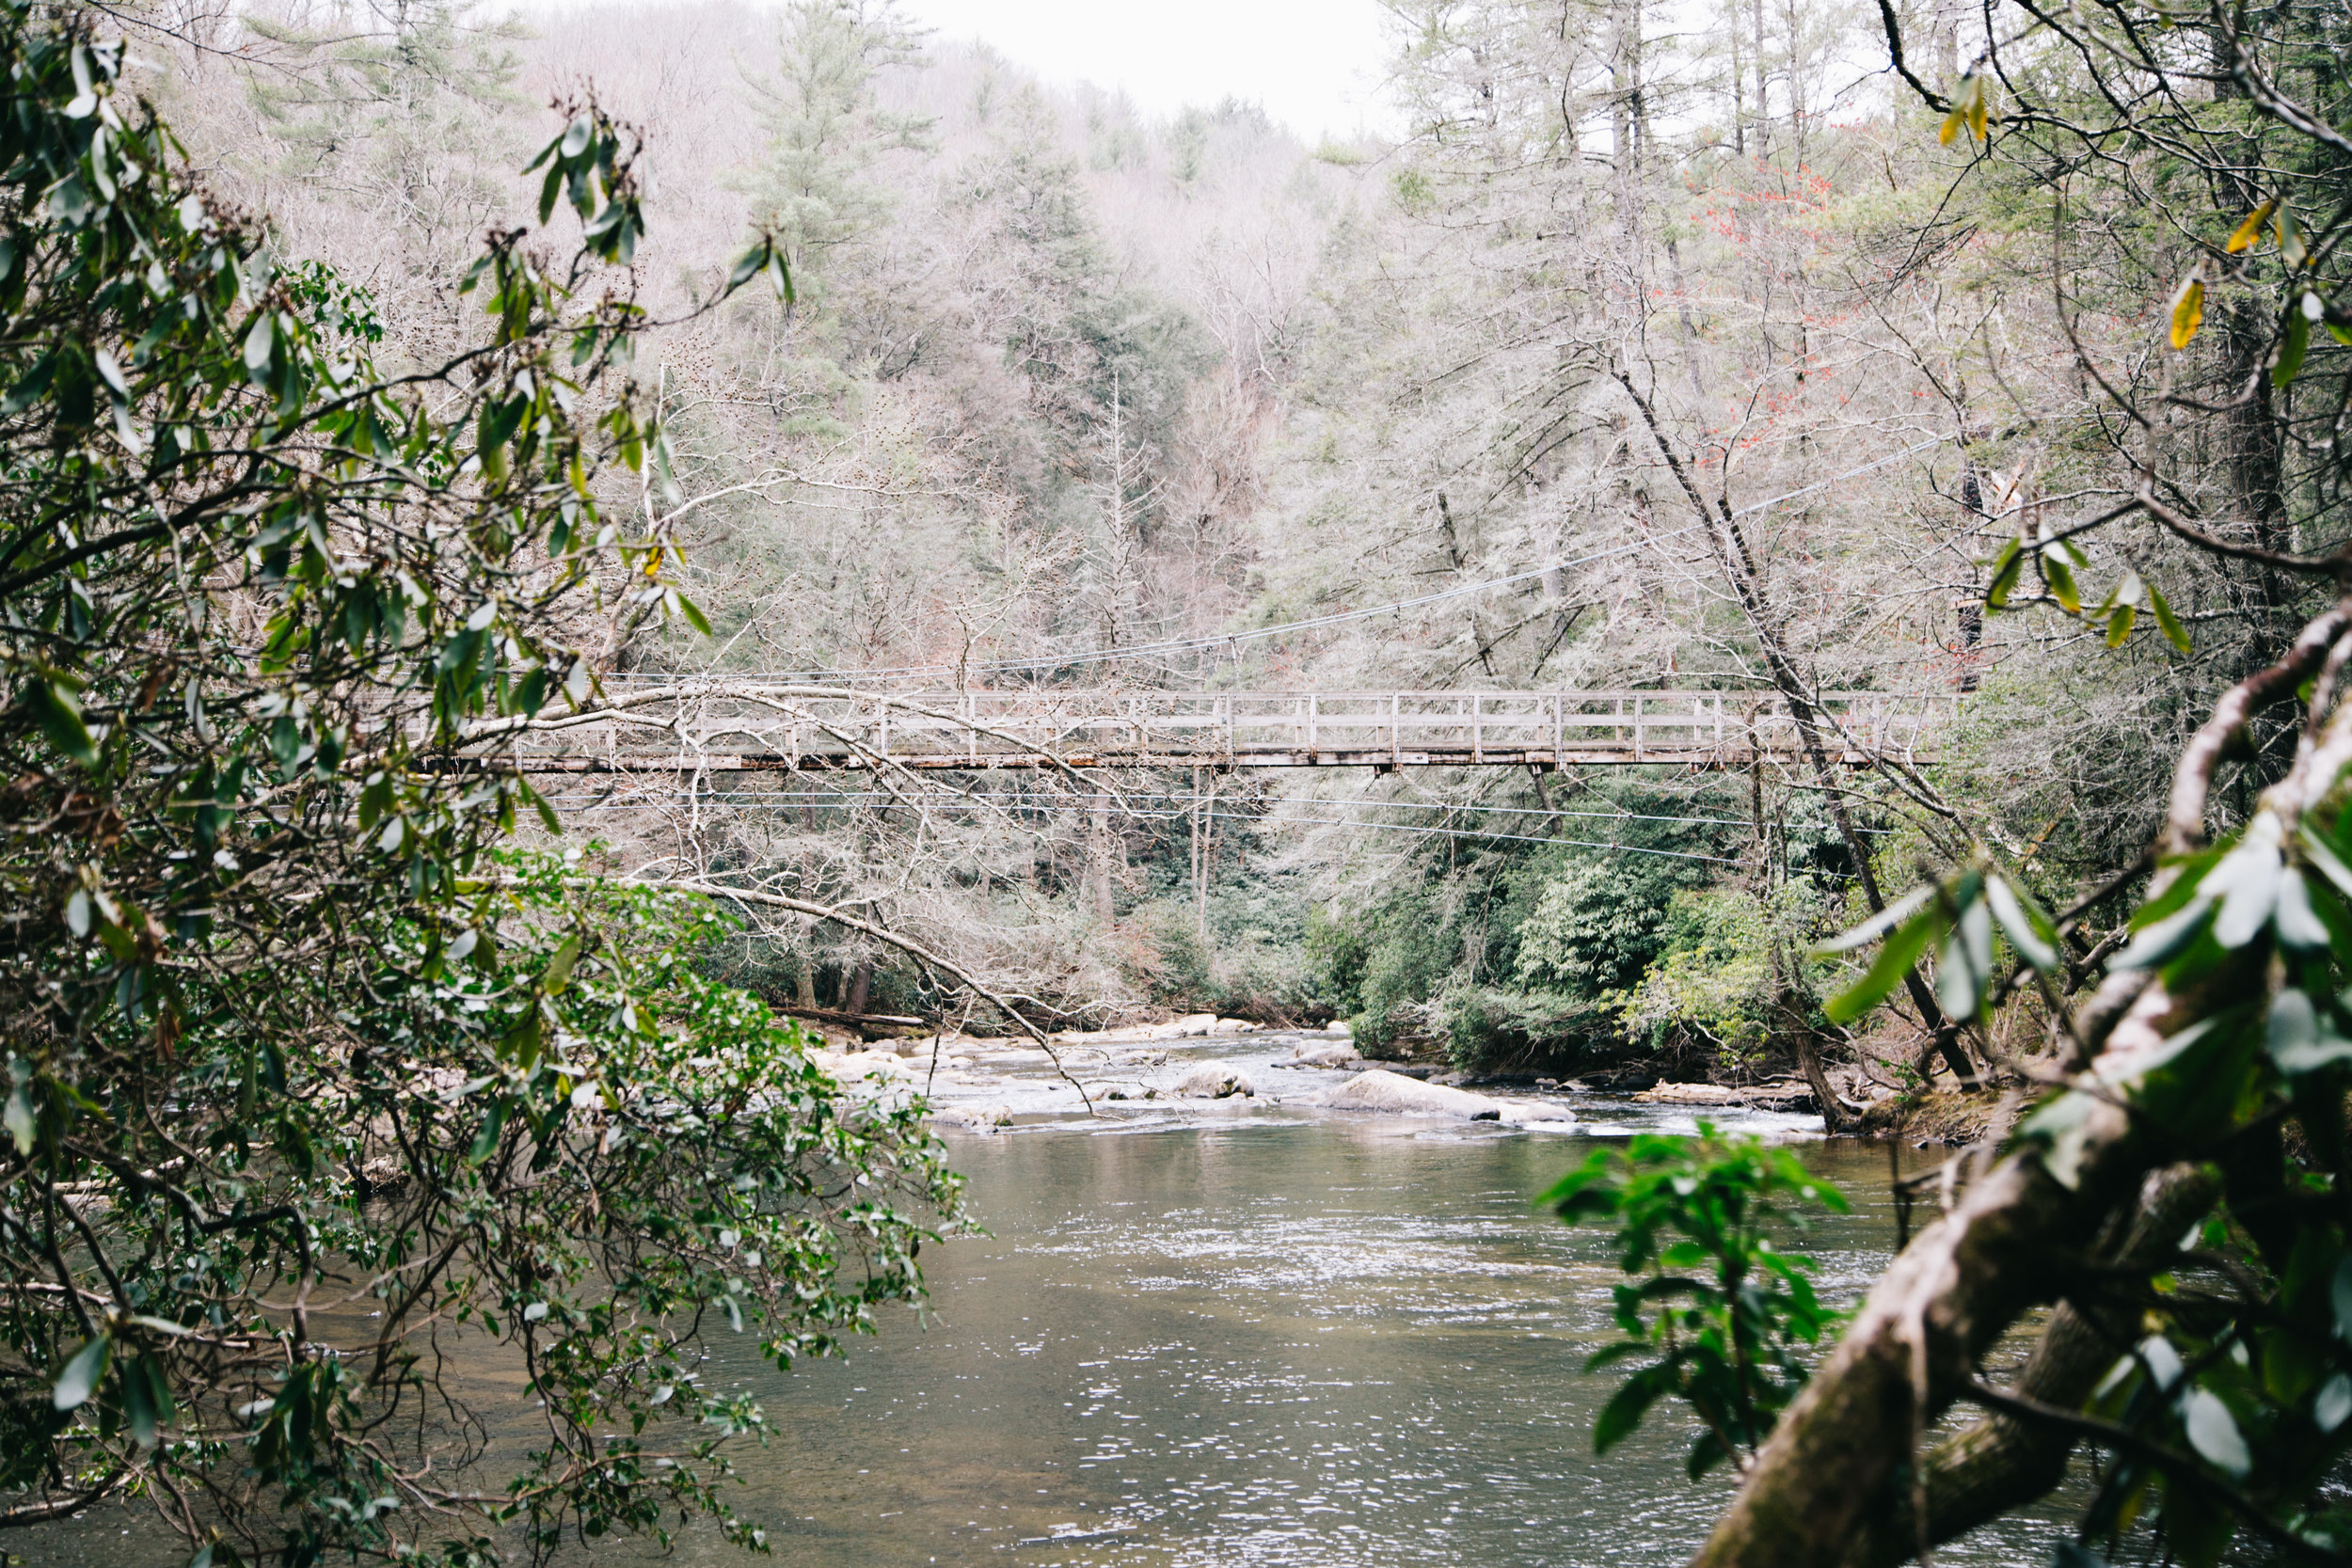 Looking for a perfect hike on your trip in North Georgia? Check out the swinging bridge over the Toccoa. Read our review on this hike at MoreDetours.com.